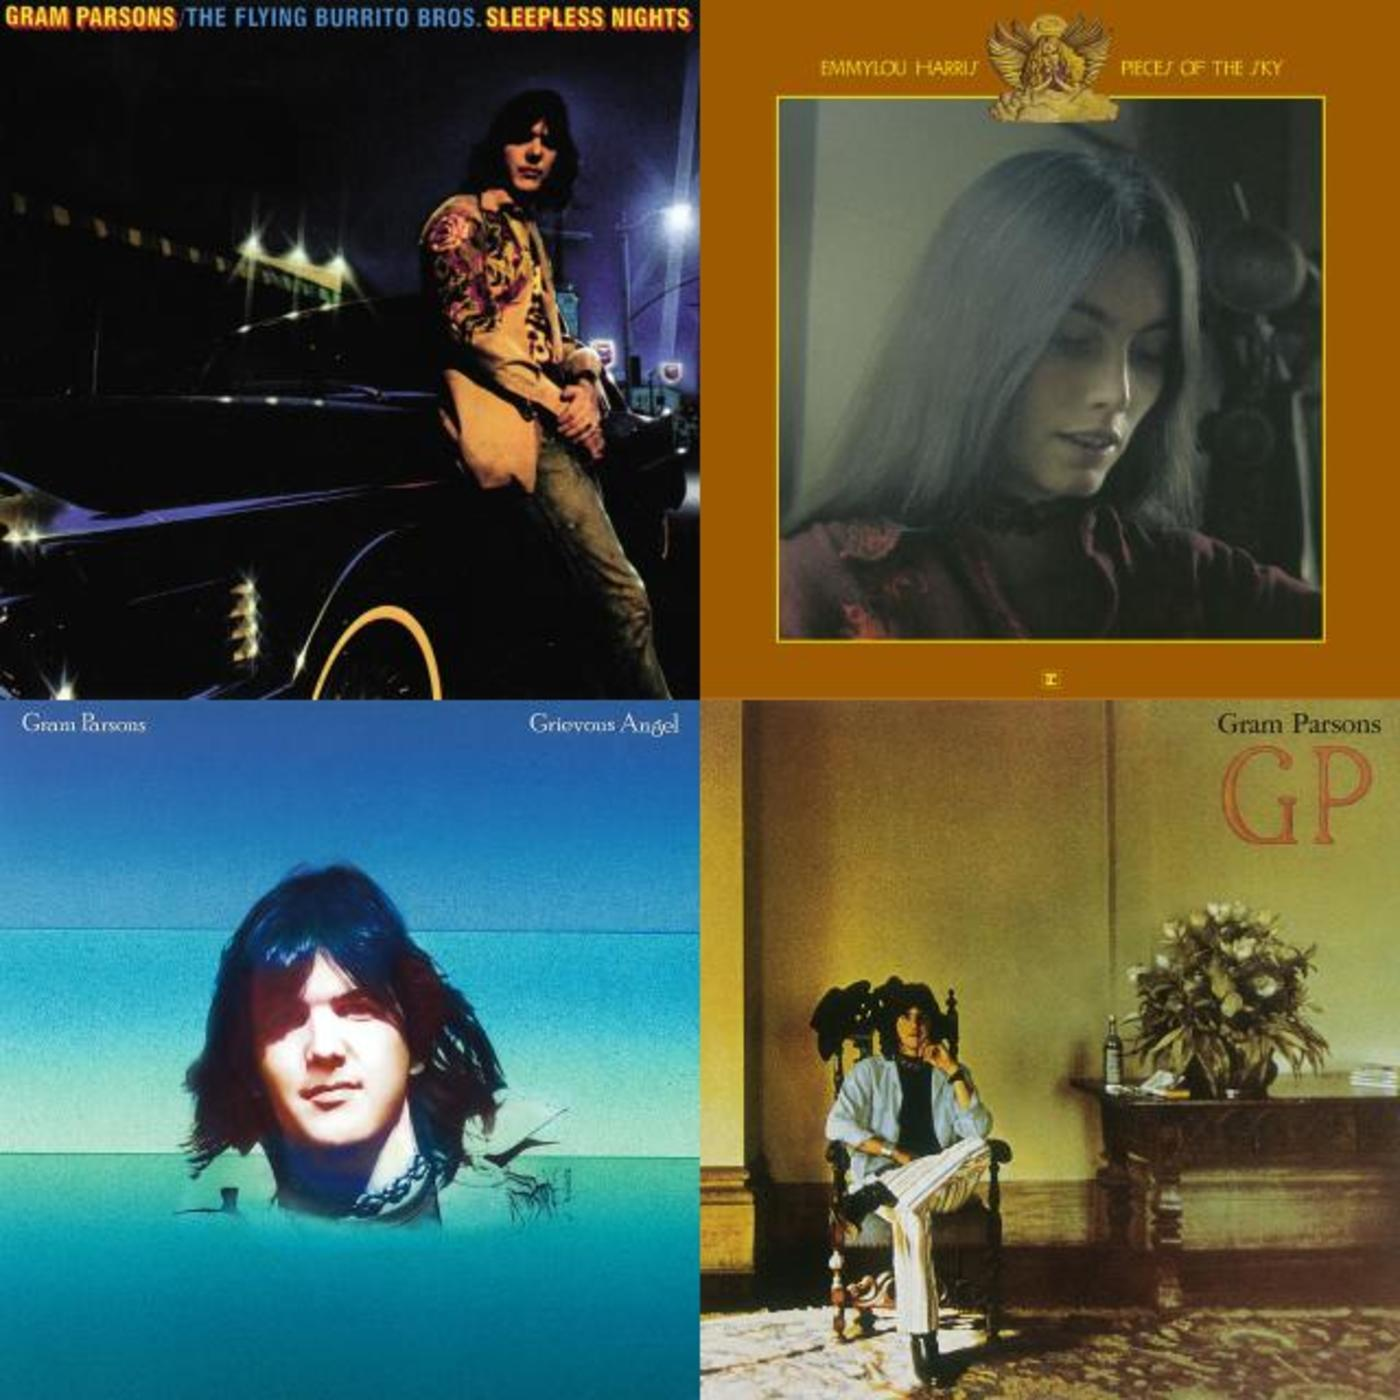 Happy Birthday, Emmylou Harris - Gram Parsons, Emmylou Harris, Mark Knopfler